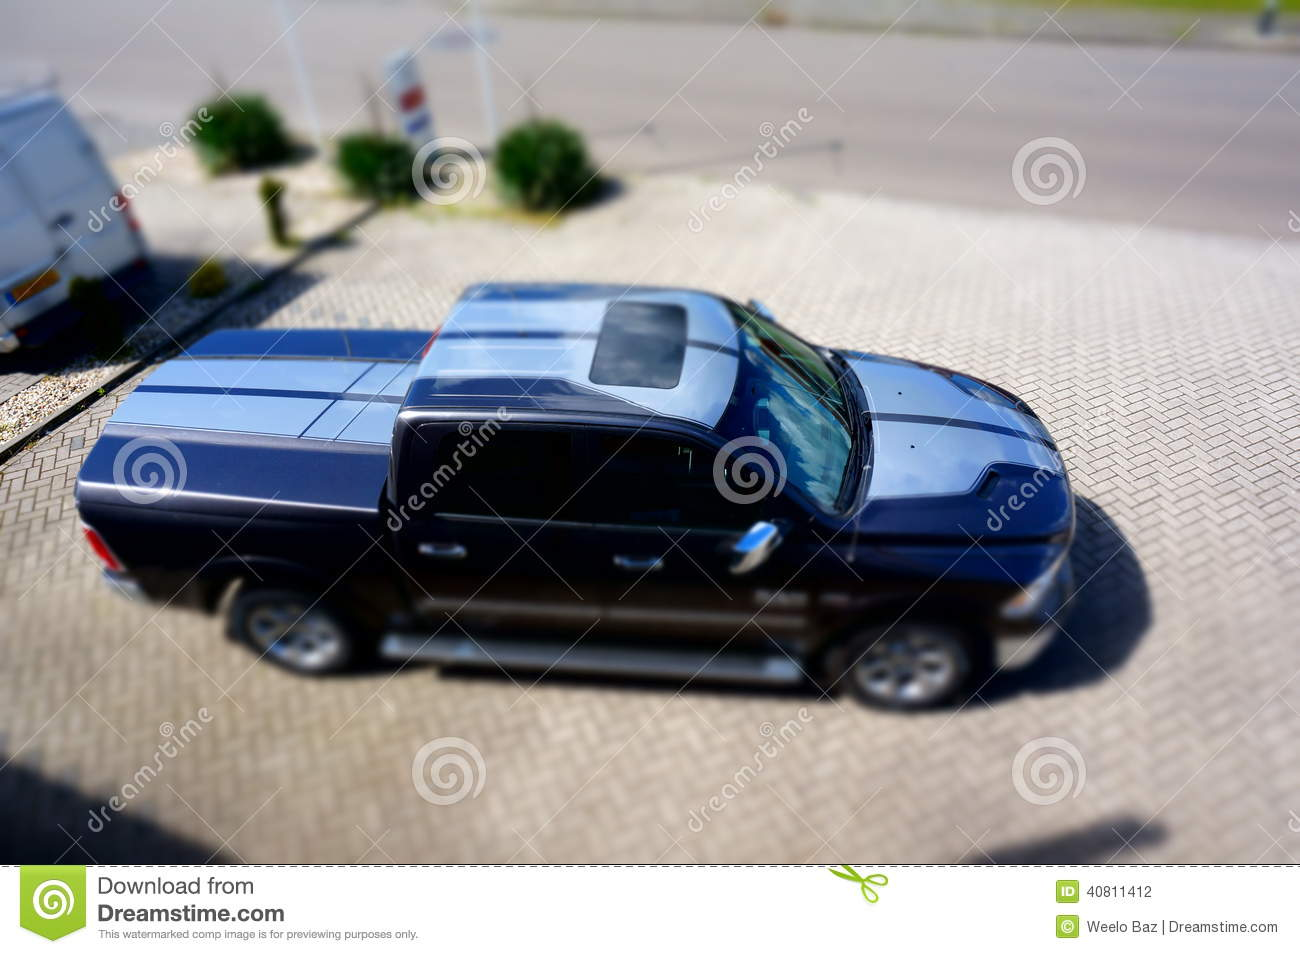 Dodge RAM 1500 stock photo. Image of cars, dodge, parked - 40811412